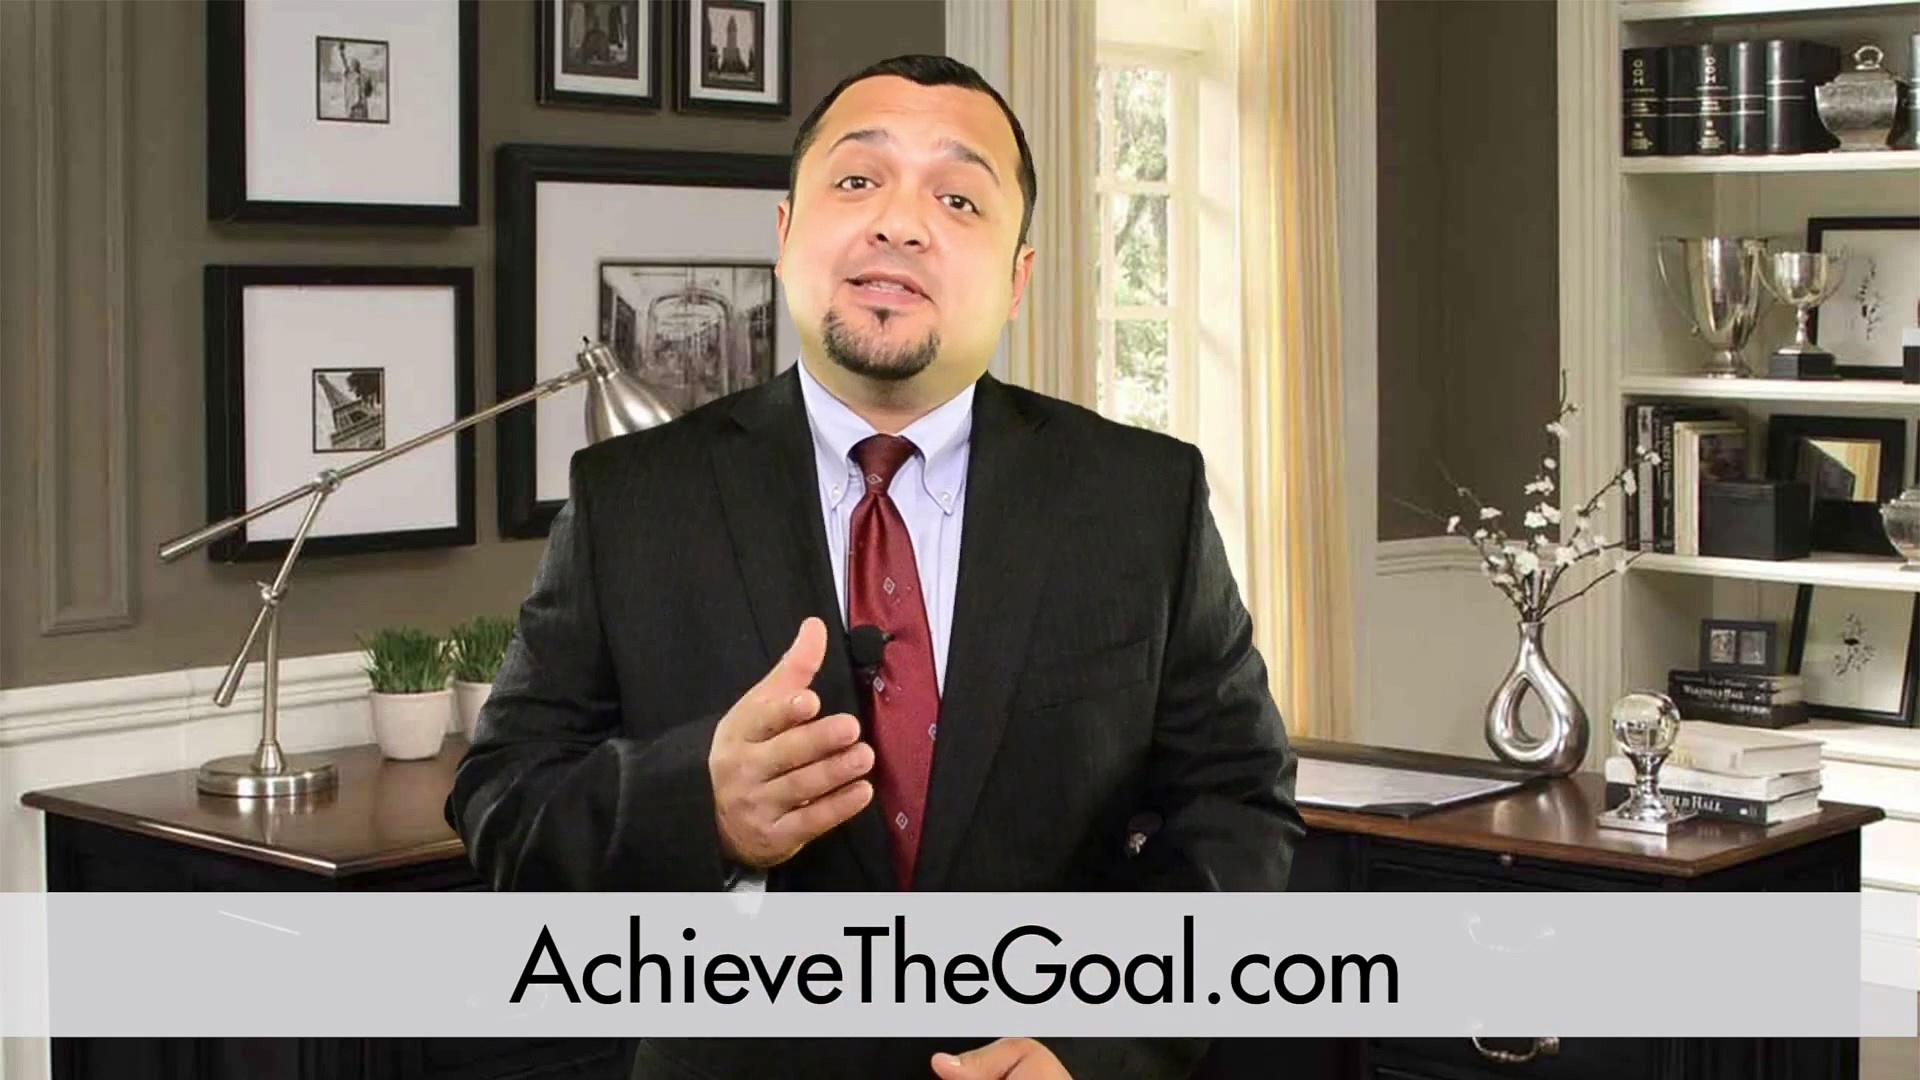 How to Make Money Online – Easy Ways to Make Money Fast Work From Home Jobs 2015